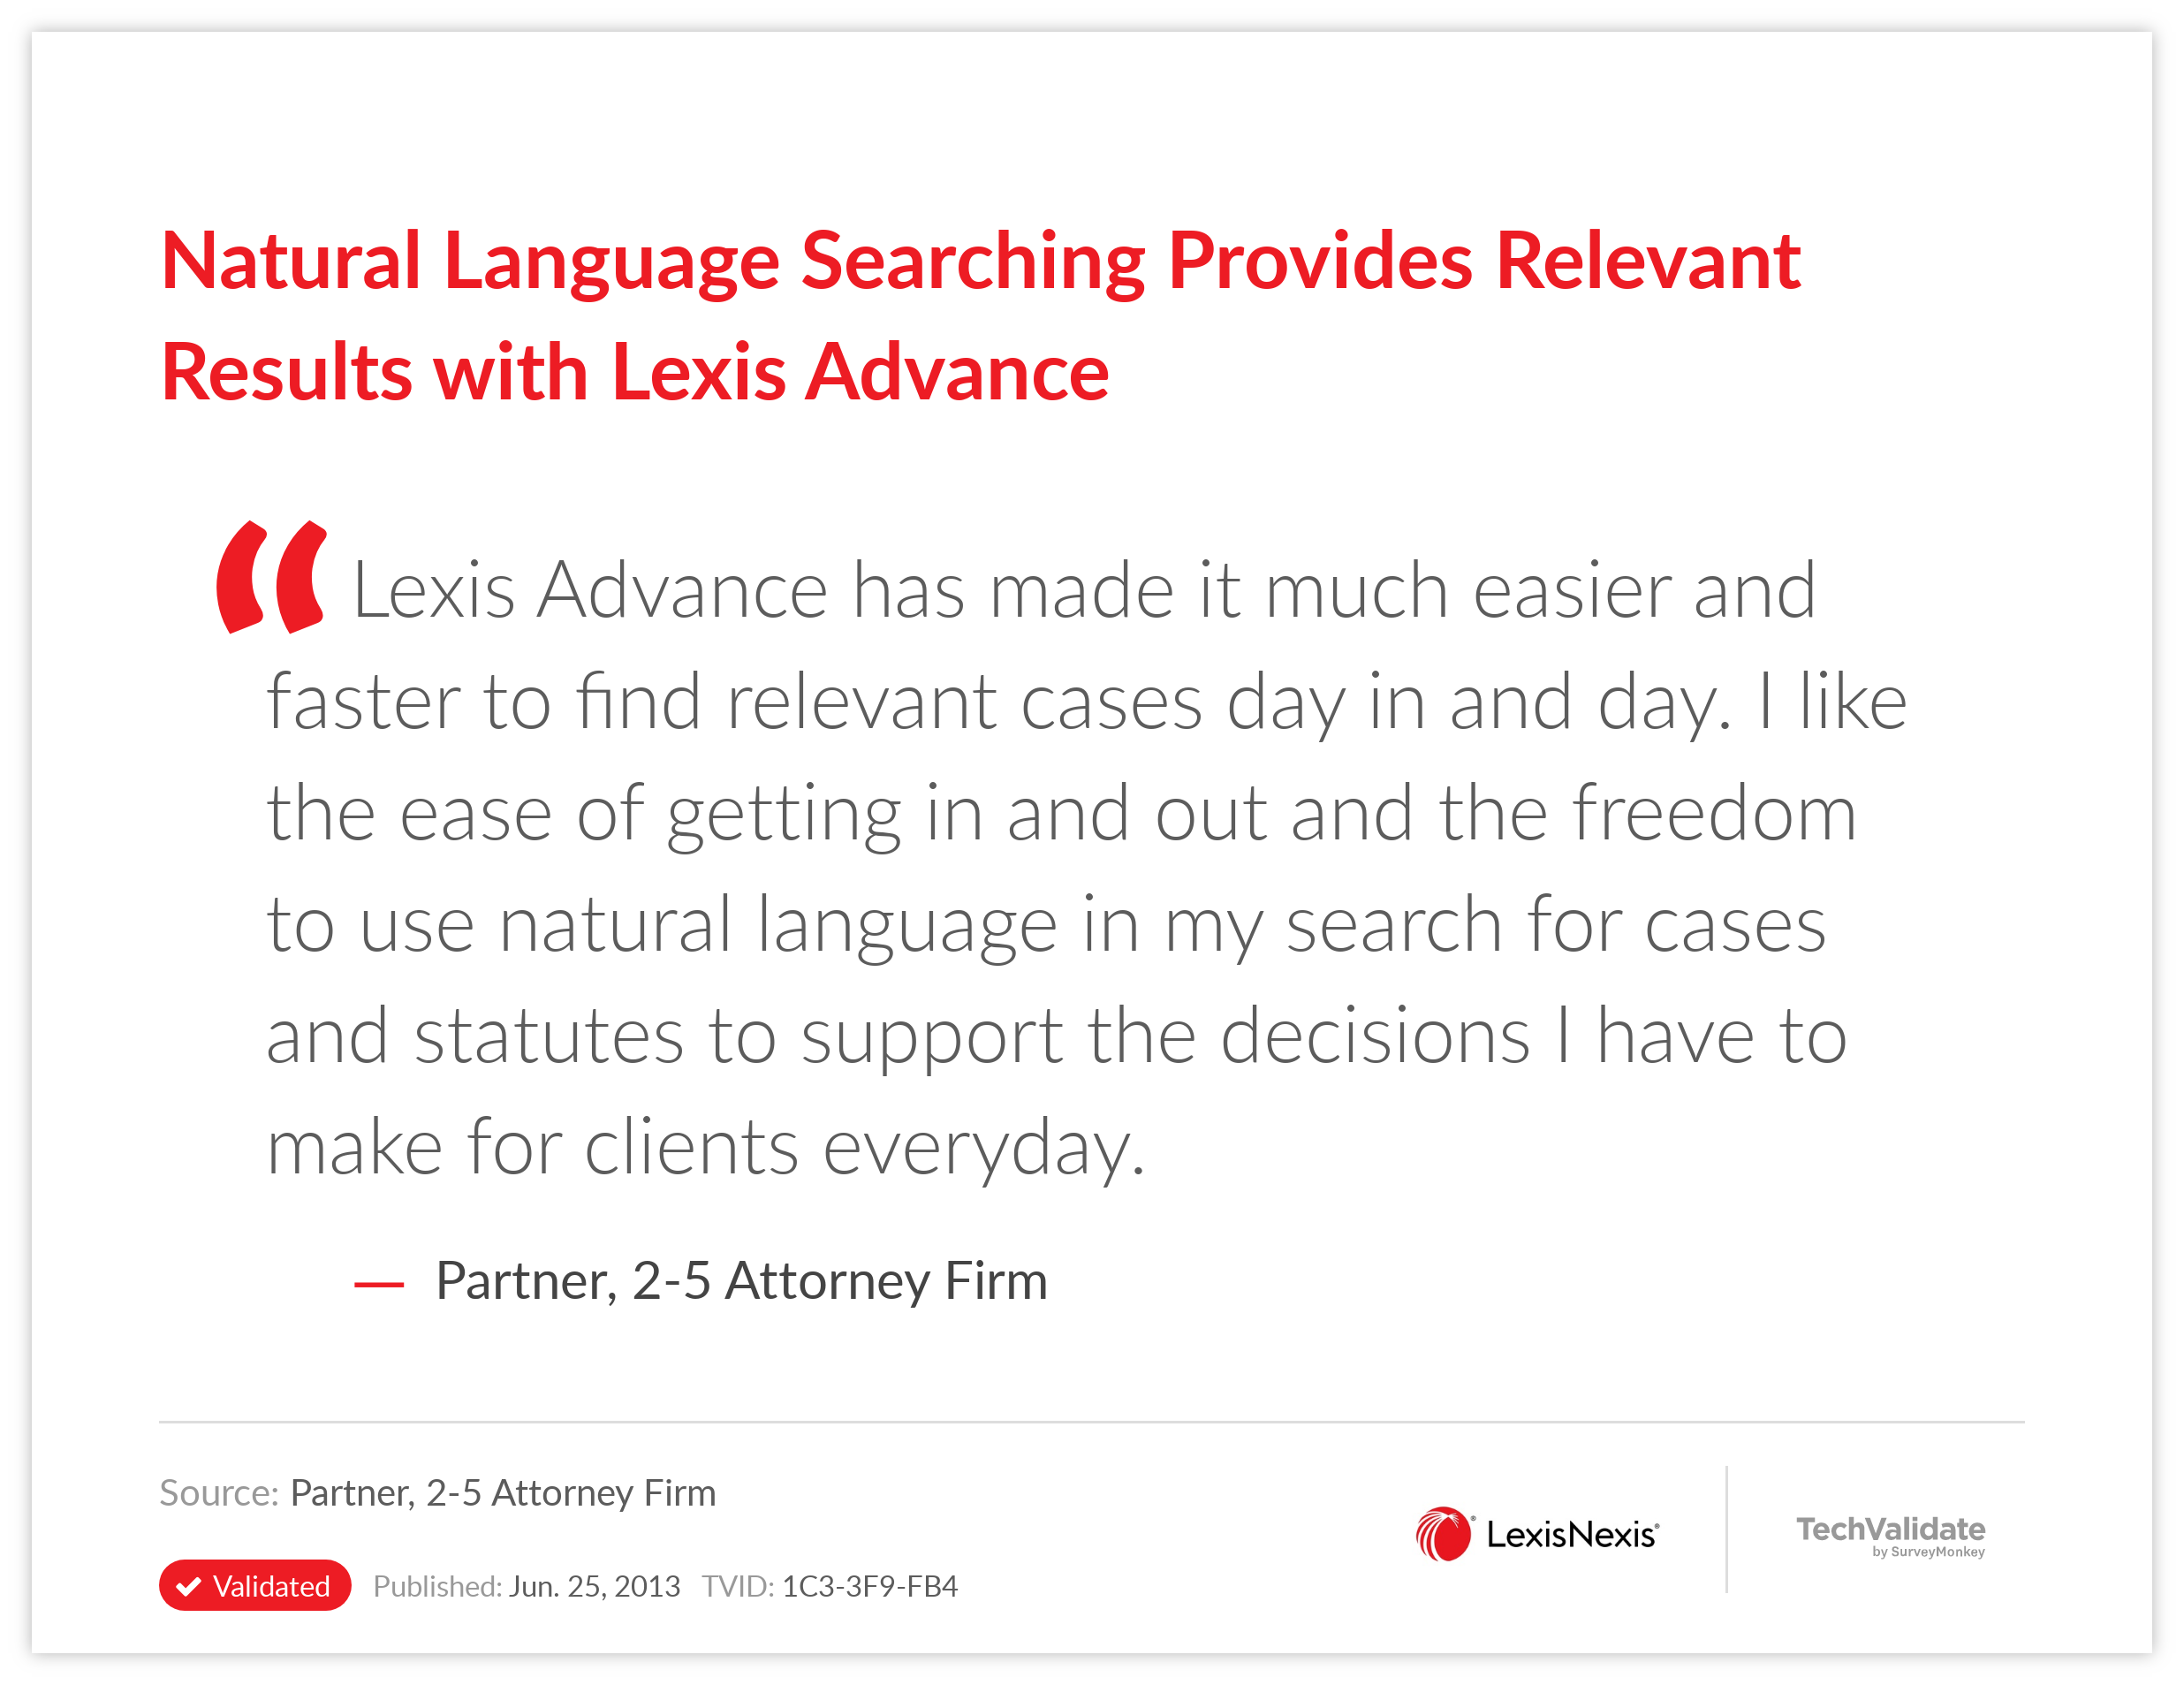 Natural Language Searching Provides Relevant Results with Lexis Advance